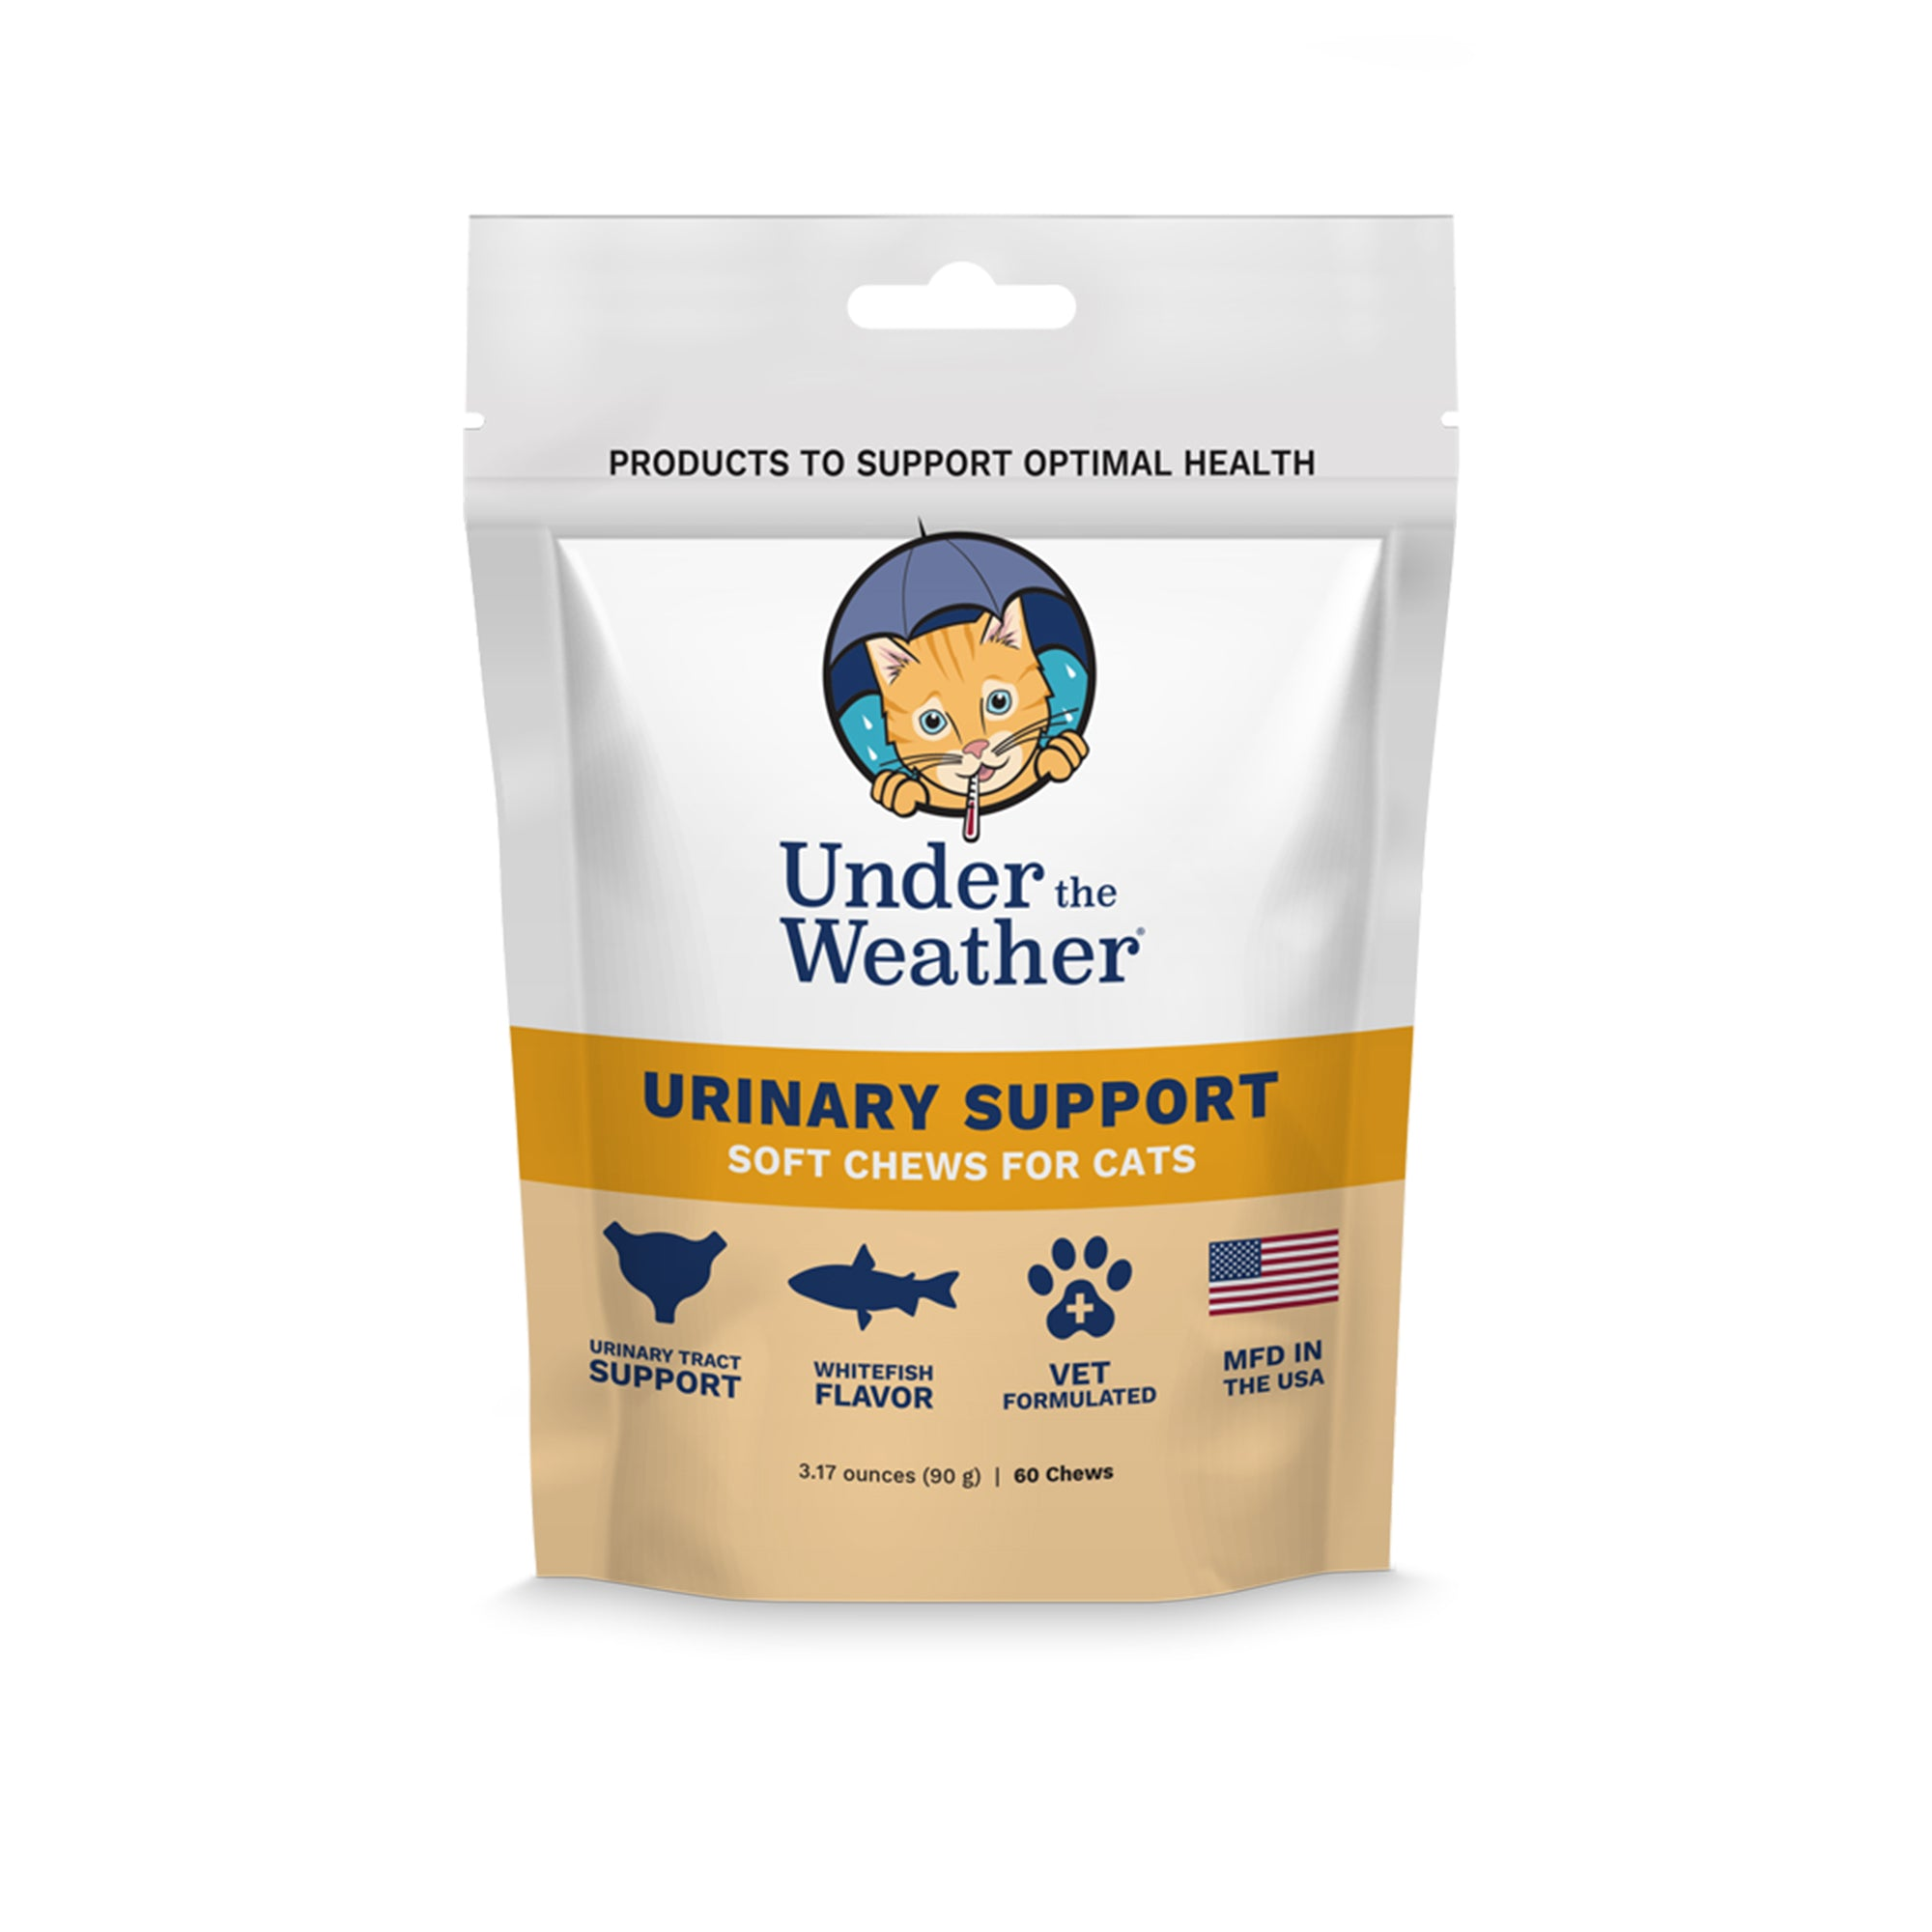 Urinary Support Soft Chews For Cats